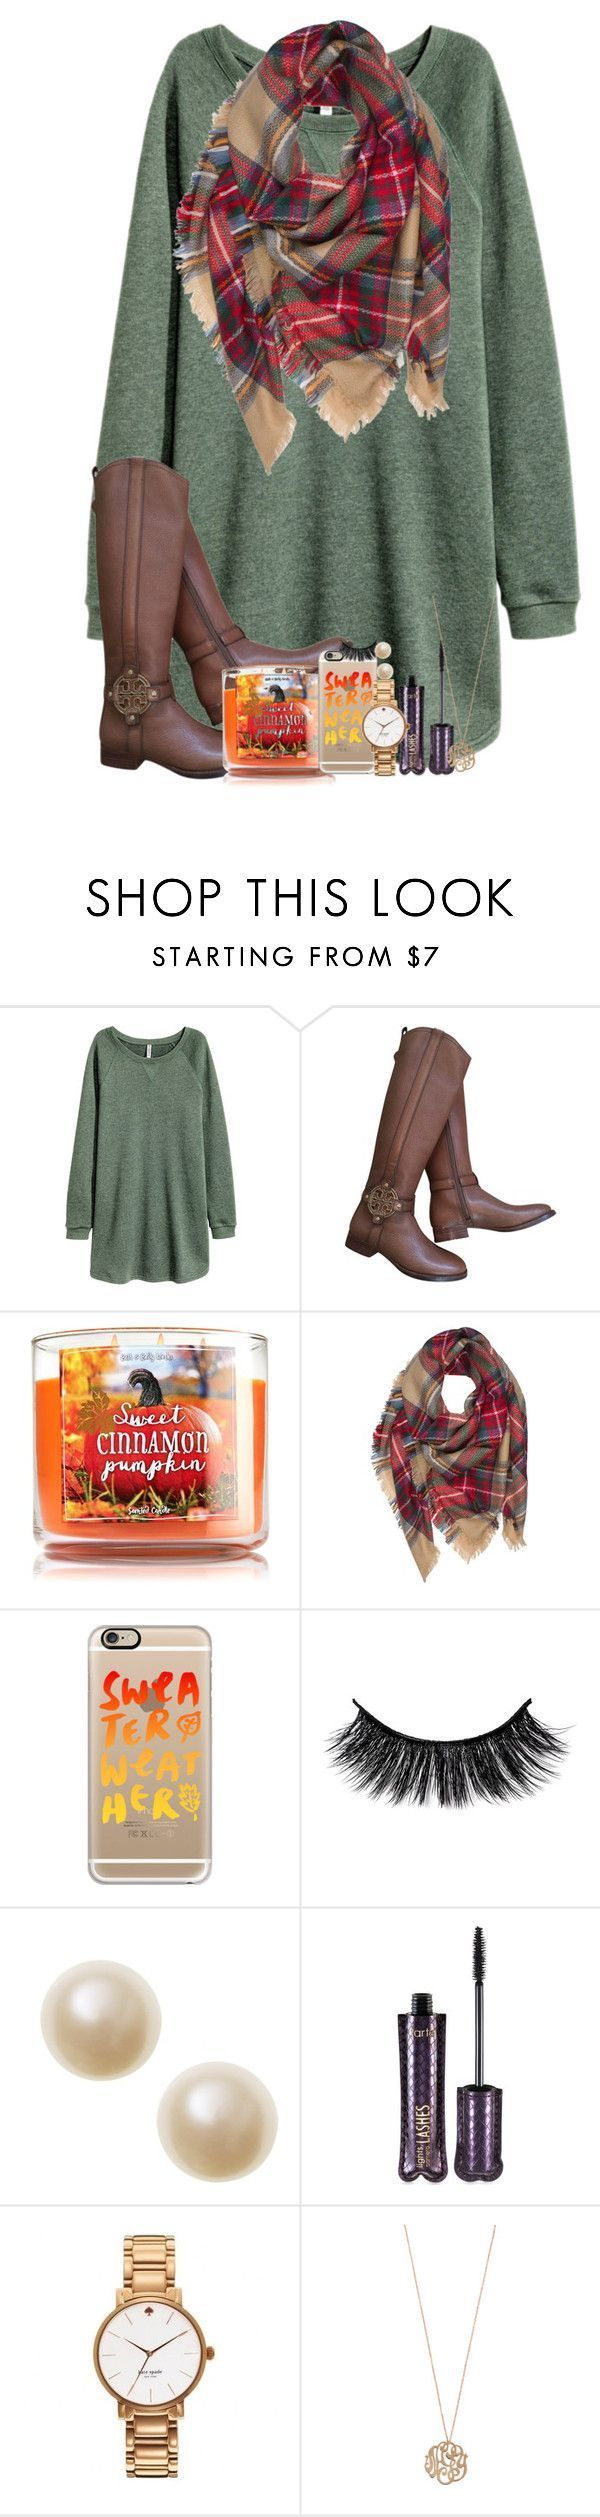 """""""even the leaves fall for you my love"""" by legitmaddywill � liked on Polyvore featuring Tory Burch, Casetify, tarte, Kate Spade and Ginette NY"""